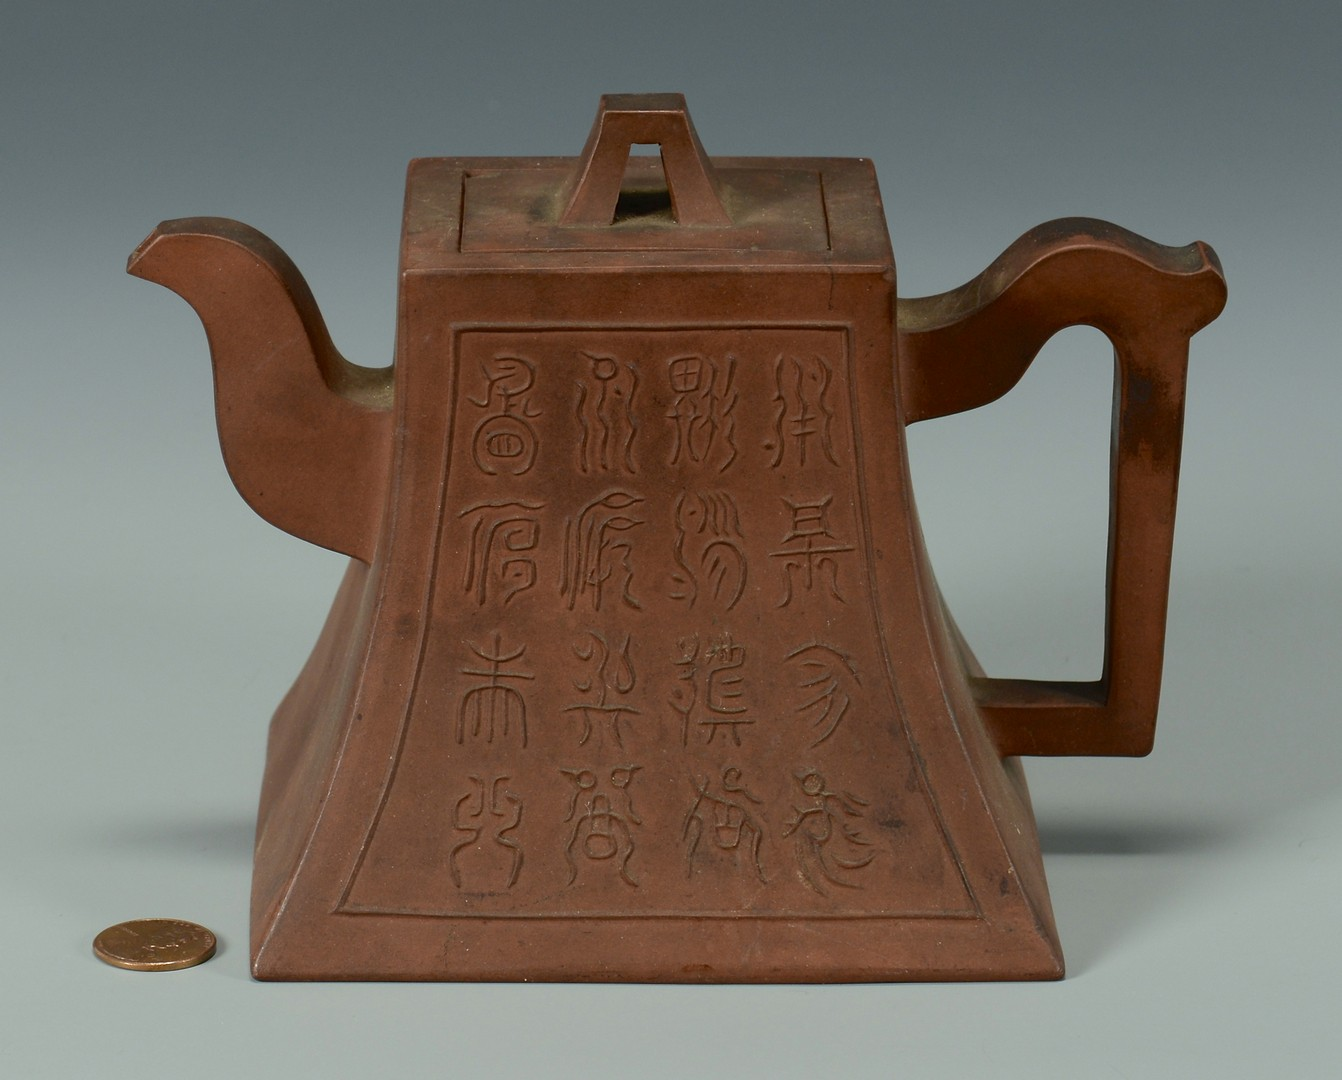 Lot 3594220: Chinese Marked Yixing Teapot